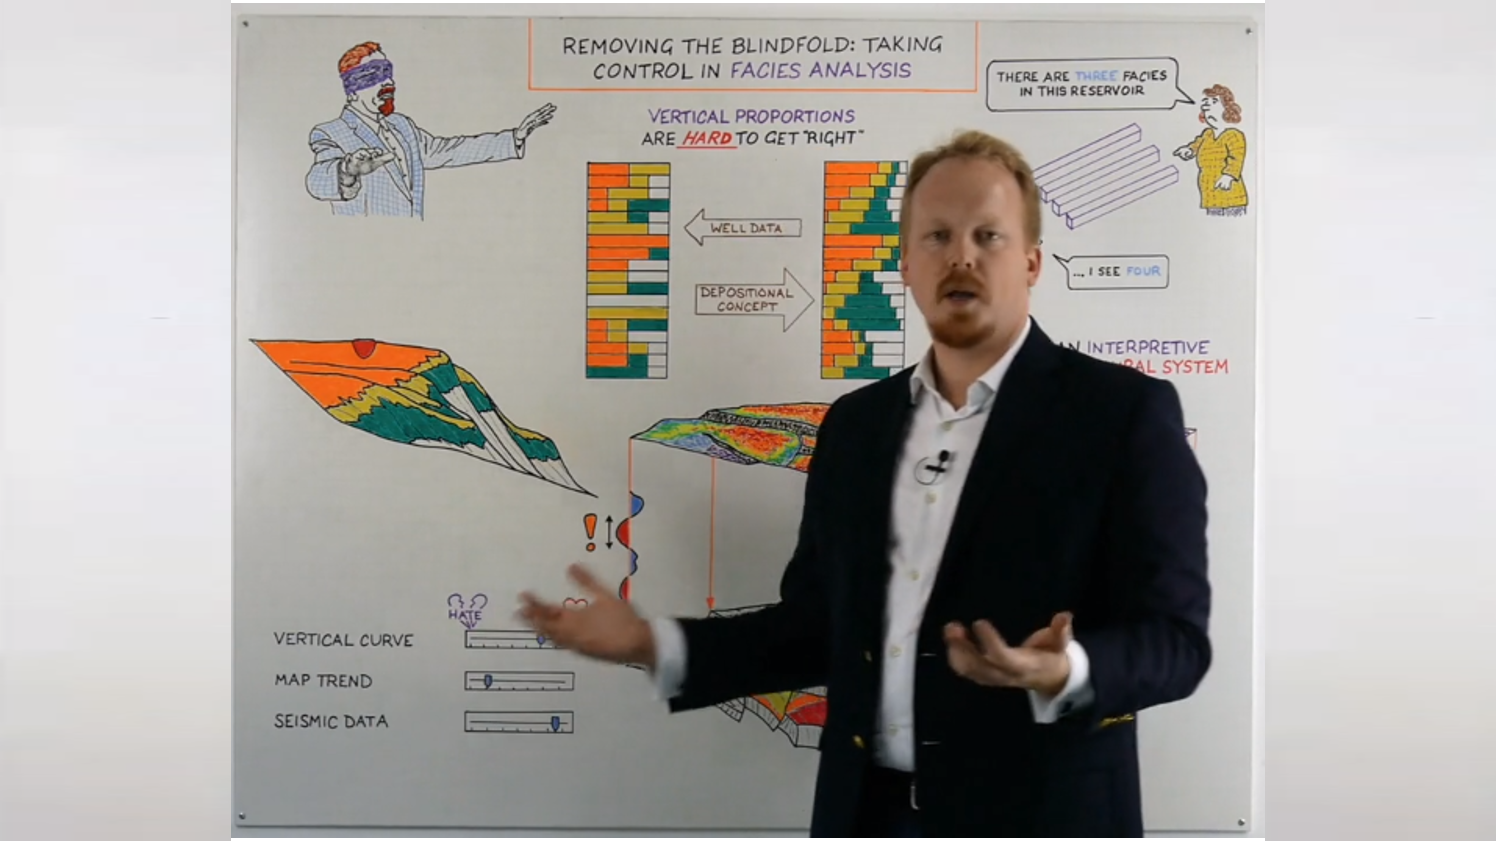 Removing The Blindfold: Taking Control in Facies Analysis - Luke is back at the Cognitive Whiteboard again for the second video in our series on facies - this week he looks at data analysis in facies modelling.